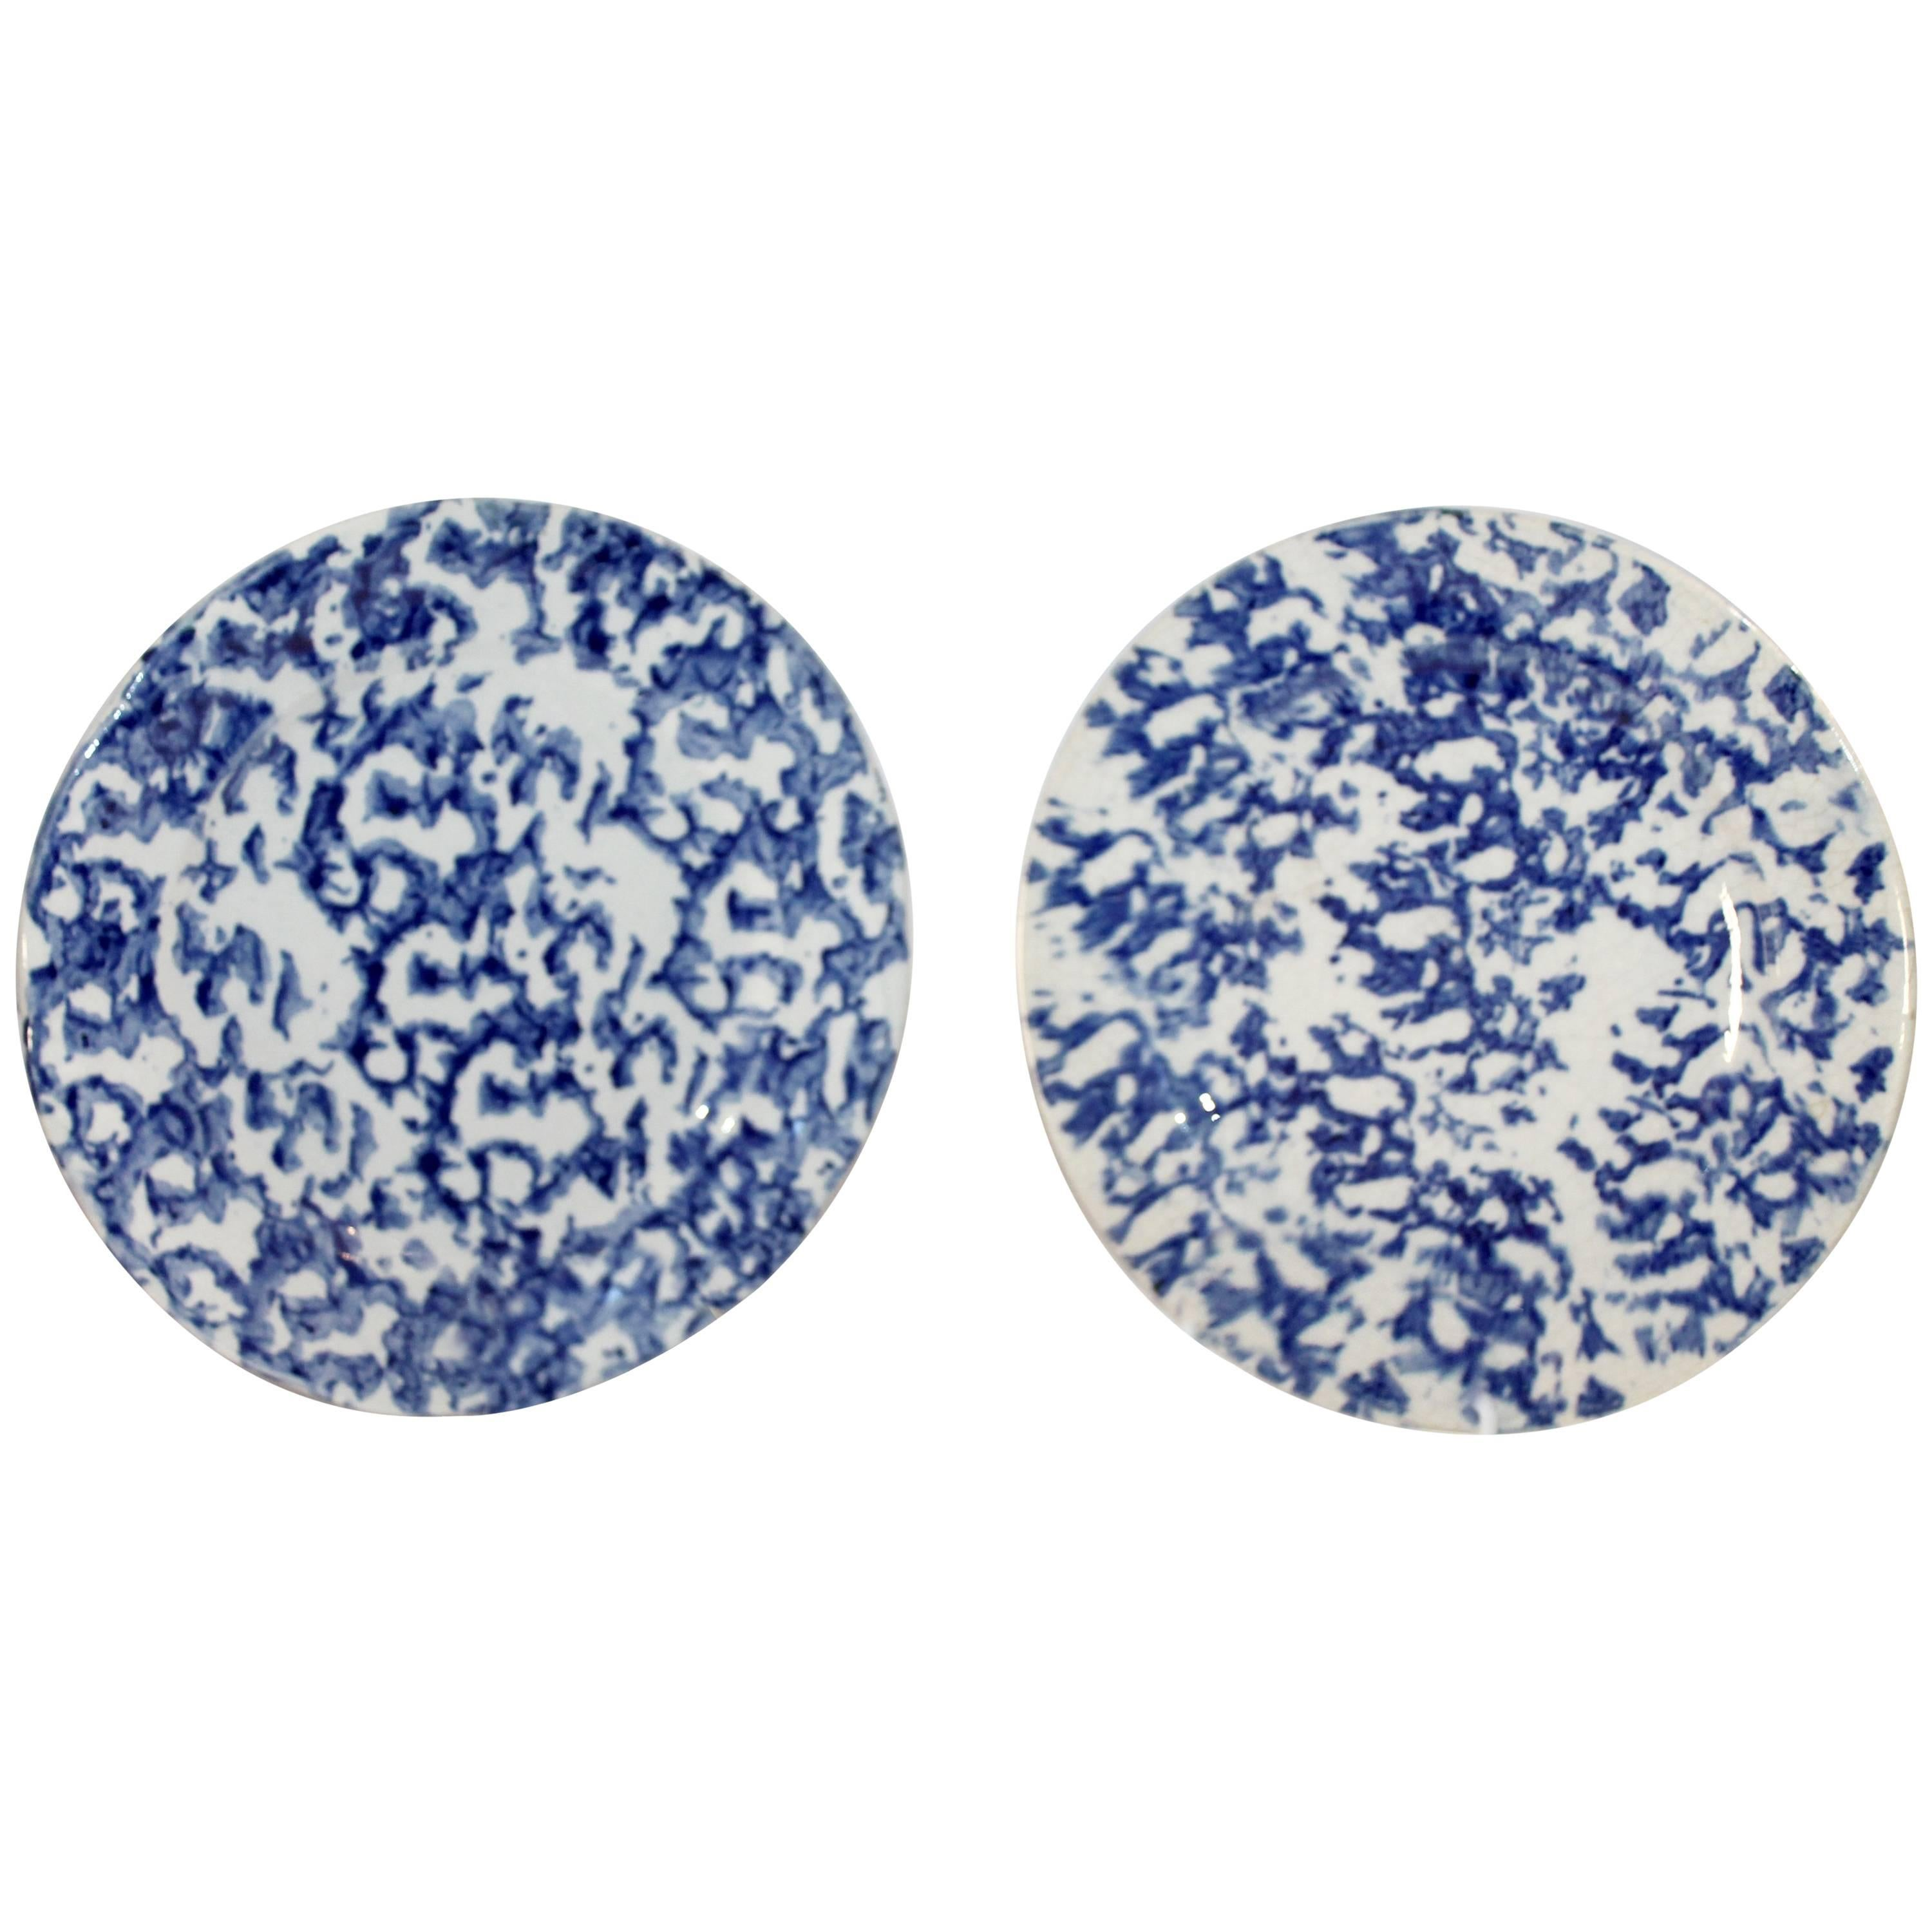 Pair of Early 19th Century Spongeware Pottery Plates